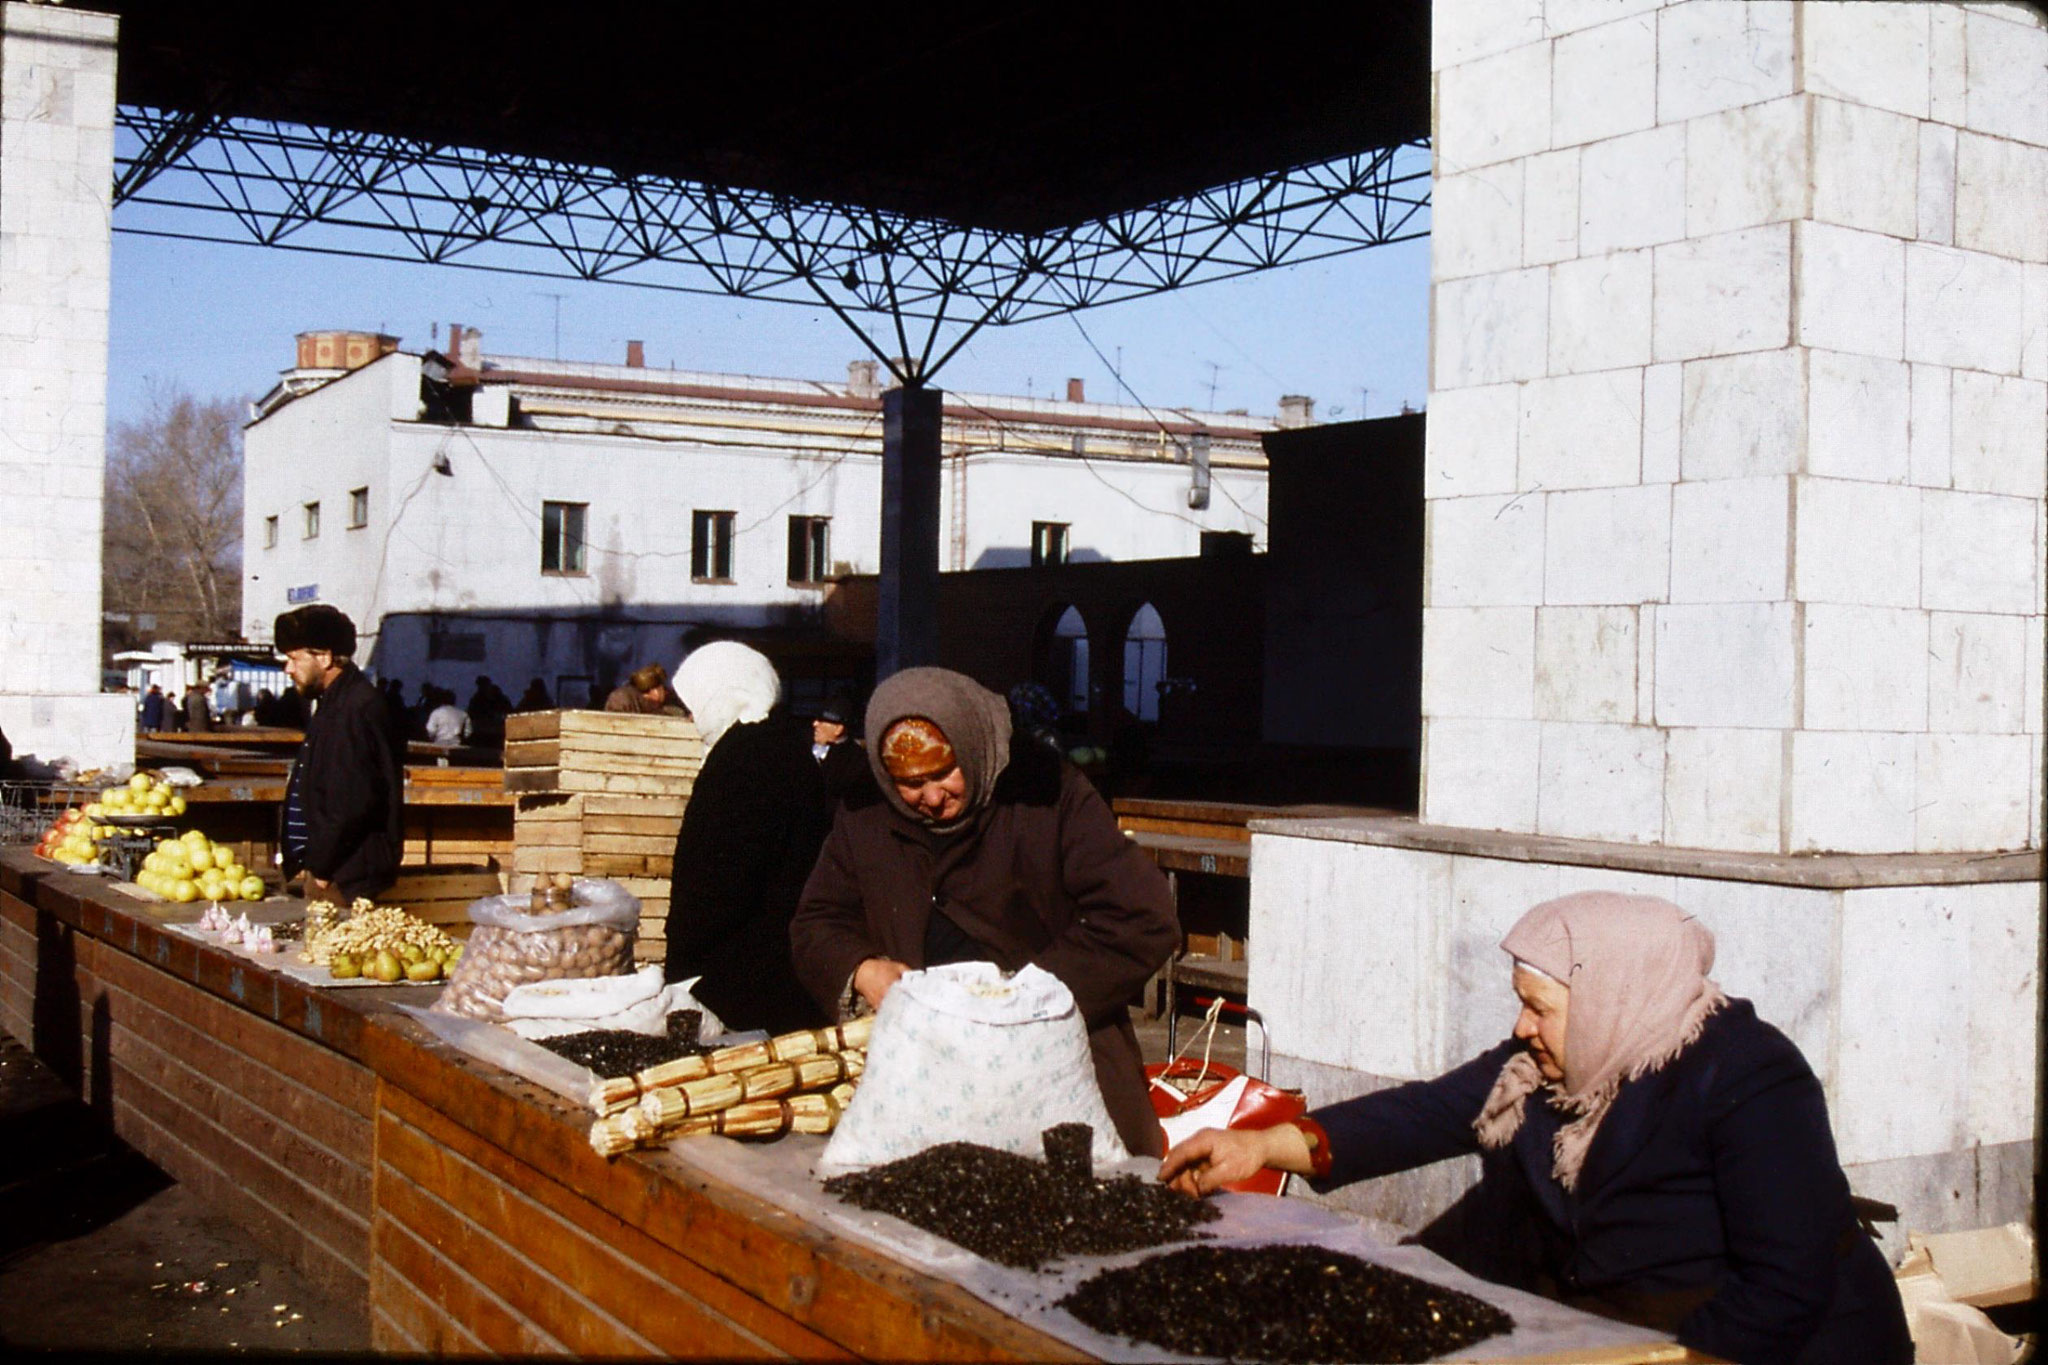 24/10/1988: 35: Irkutsk vegetable market